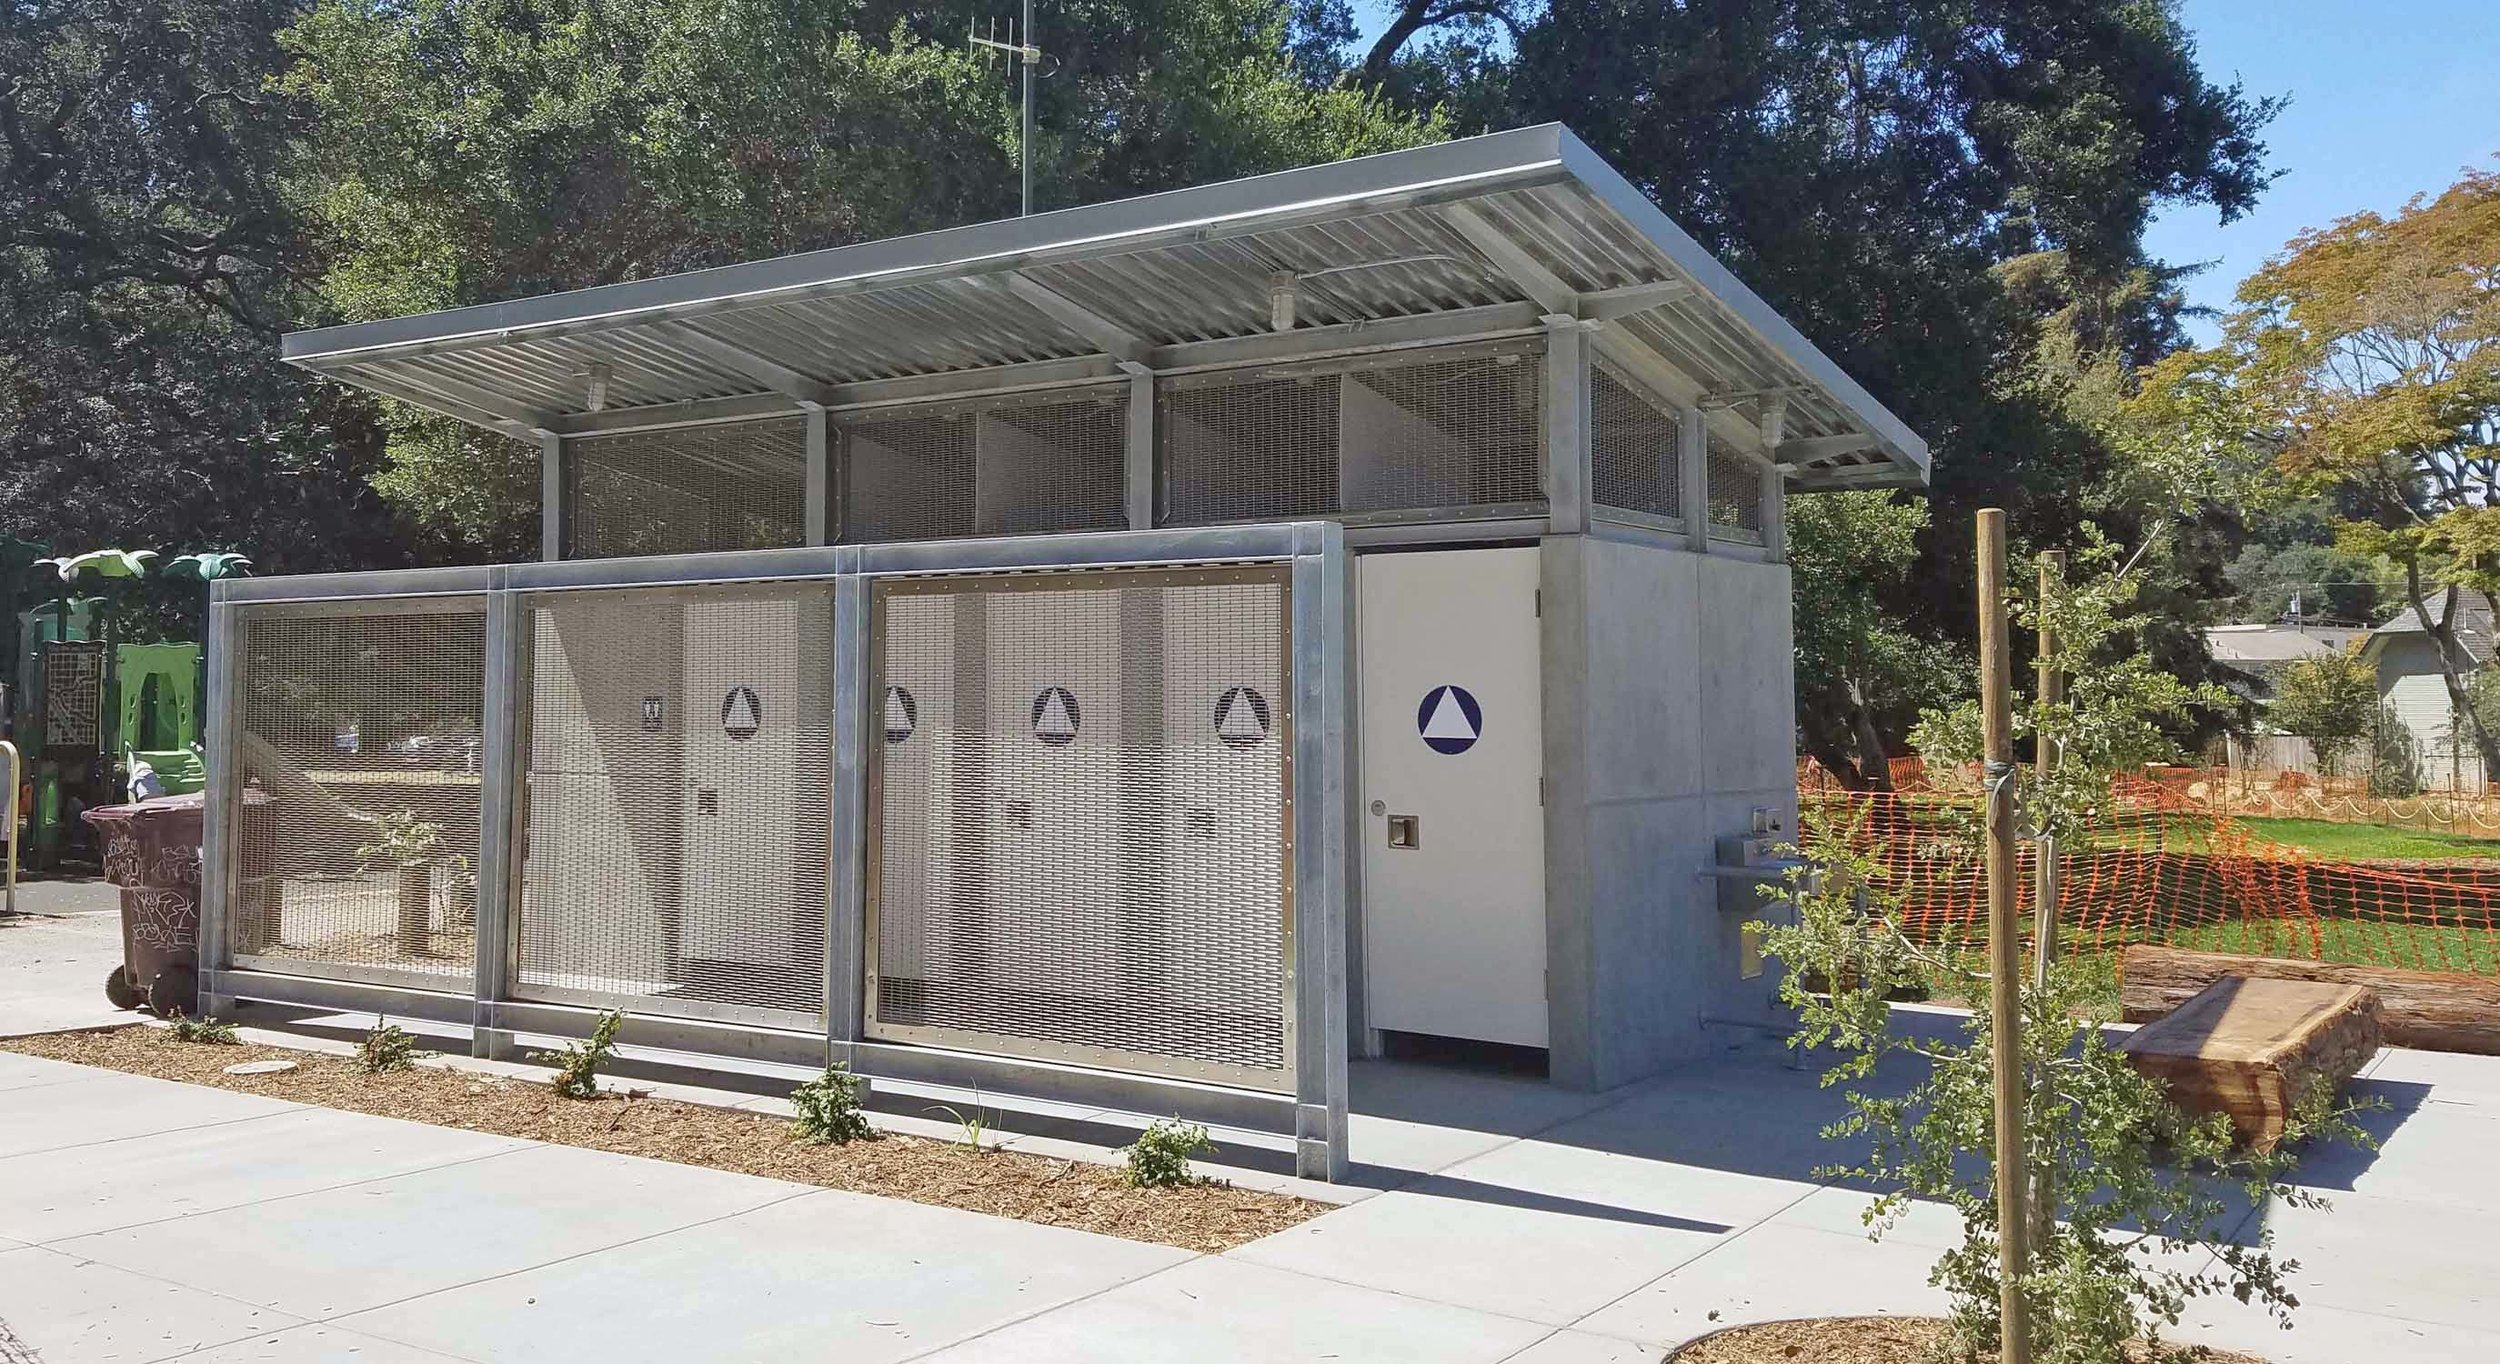 OAKLAND PARKS ACCESSORY BUILDINGS - DIMOND PARK RESTROOM